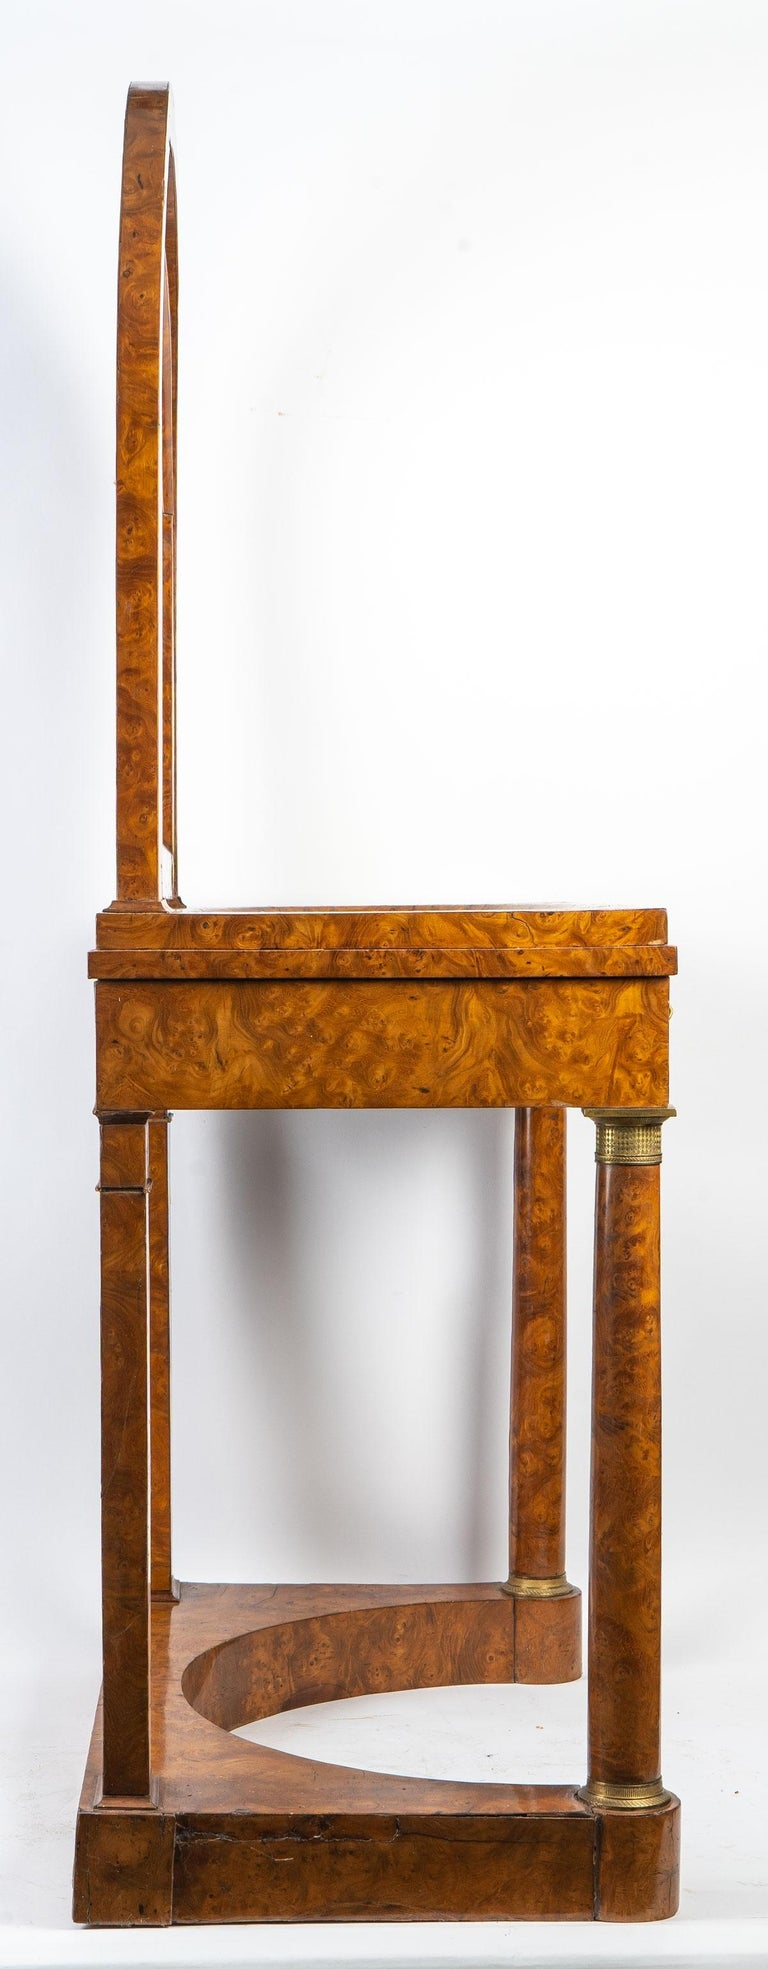 Plated Empire Period Hairdresser, circa 1810 For Sale